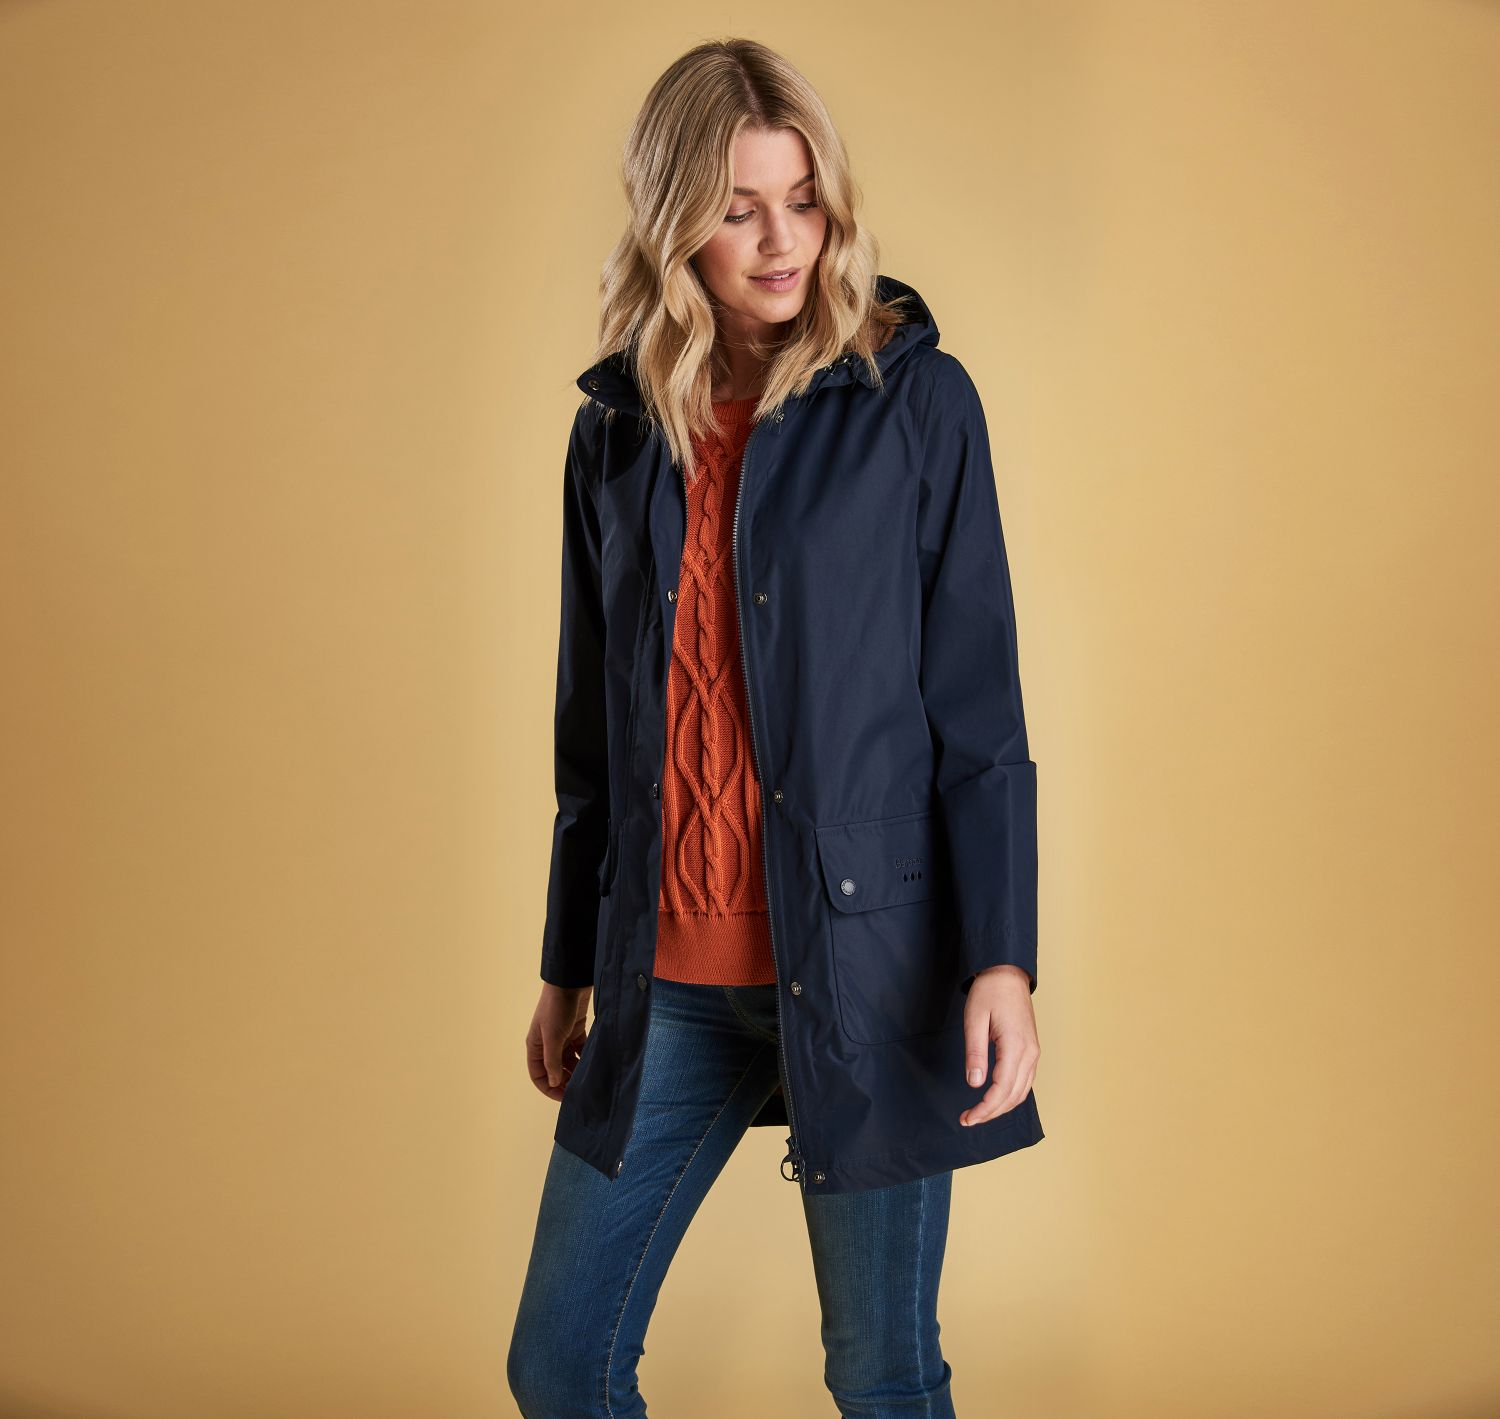 bde5a093e Barbour Inclement Waterproof Breathable Jacket